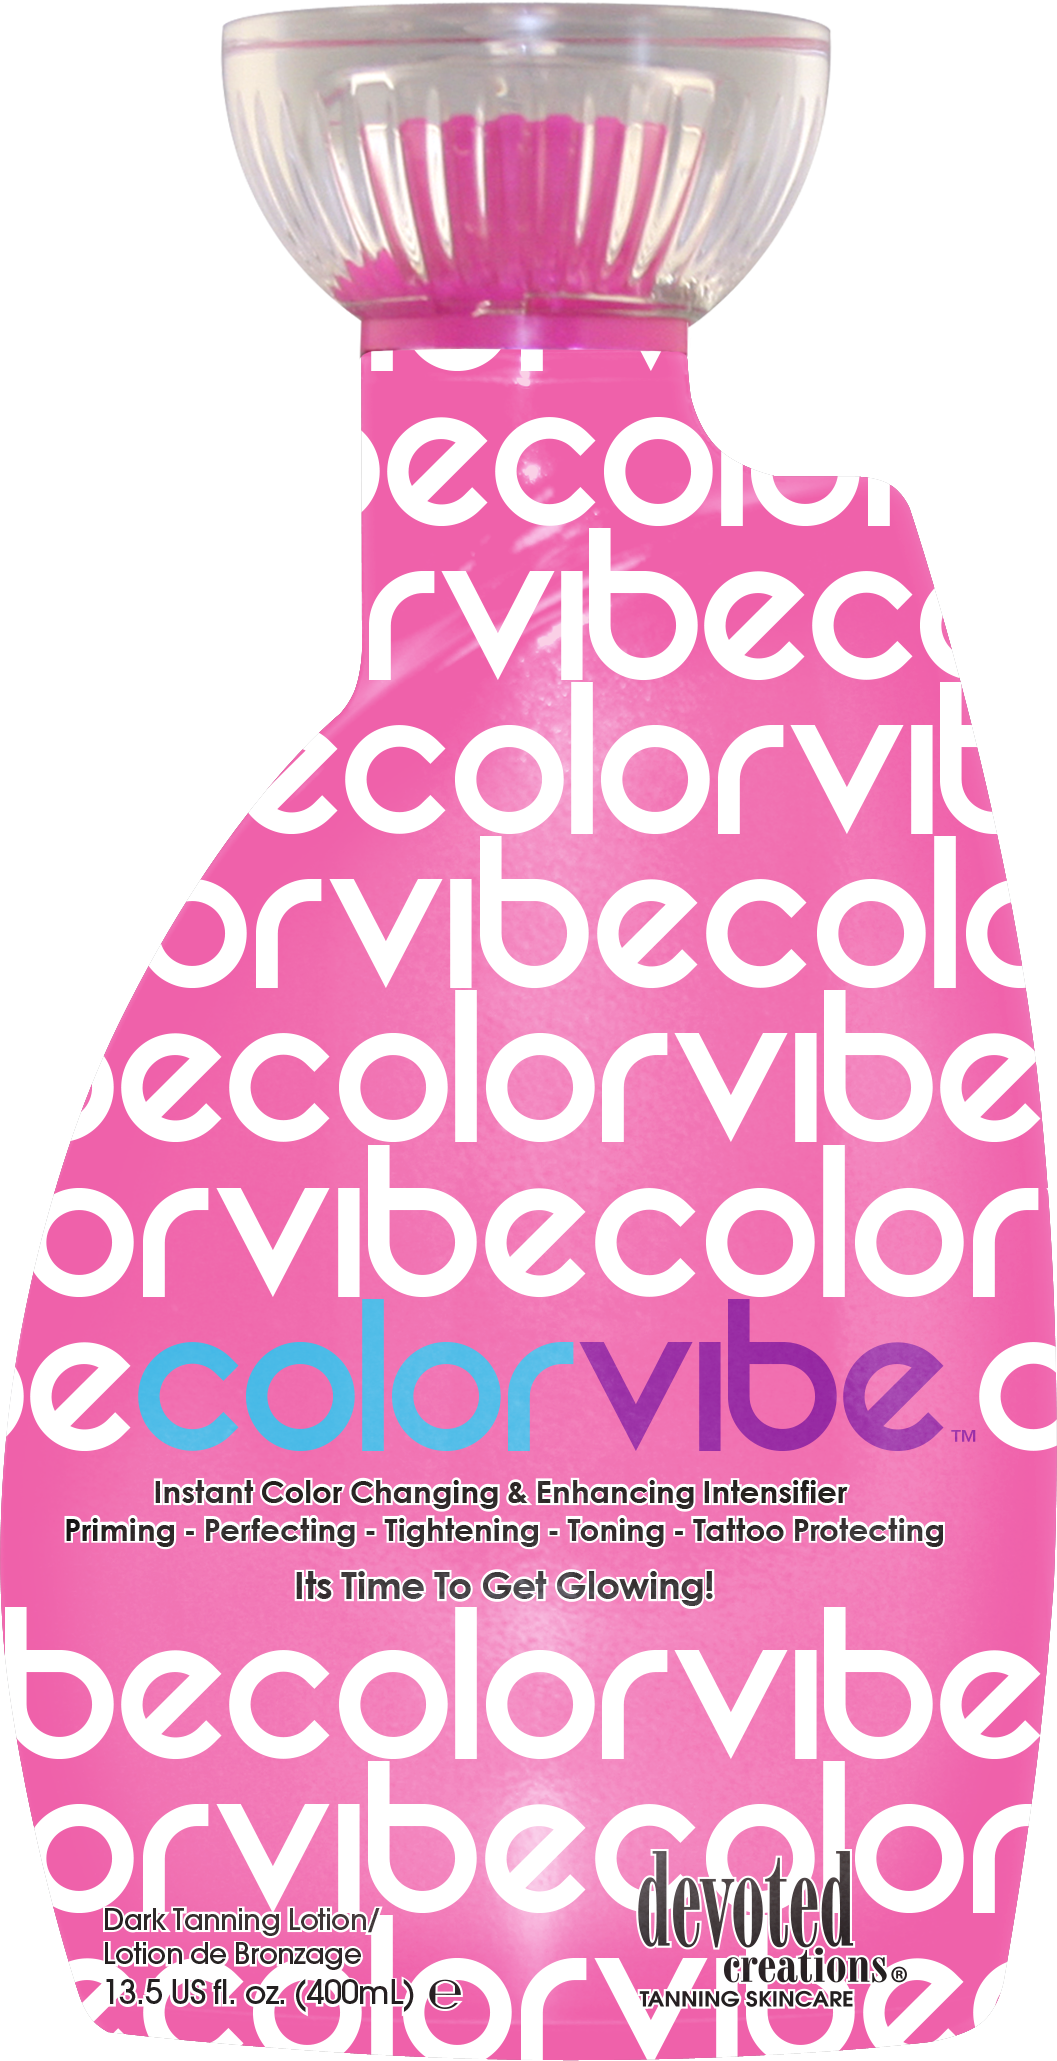 Color Vibe Instant Color-Changing & Enhancing Intensifier